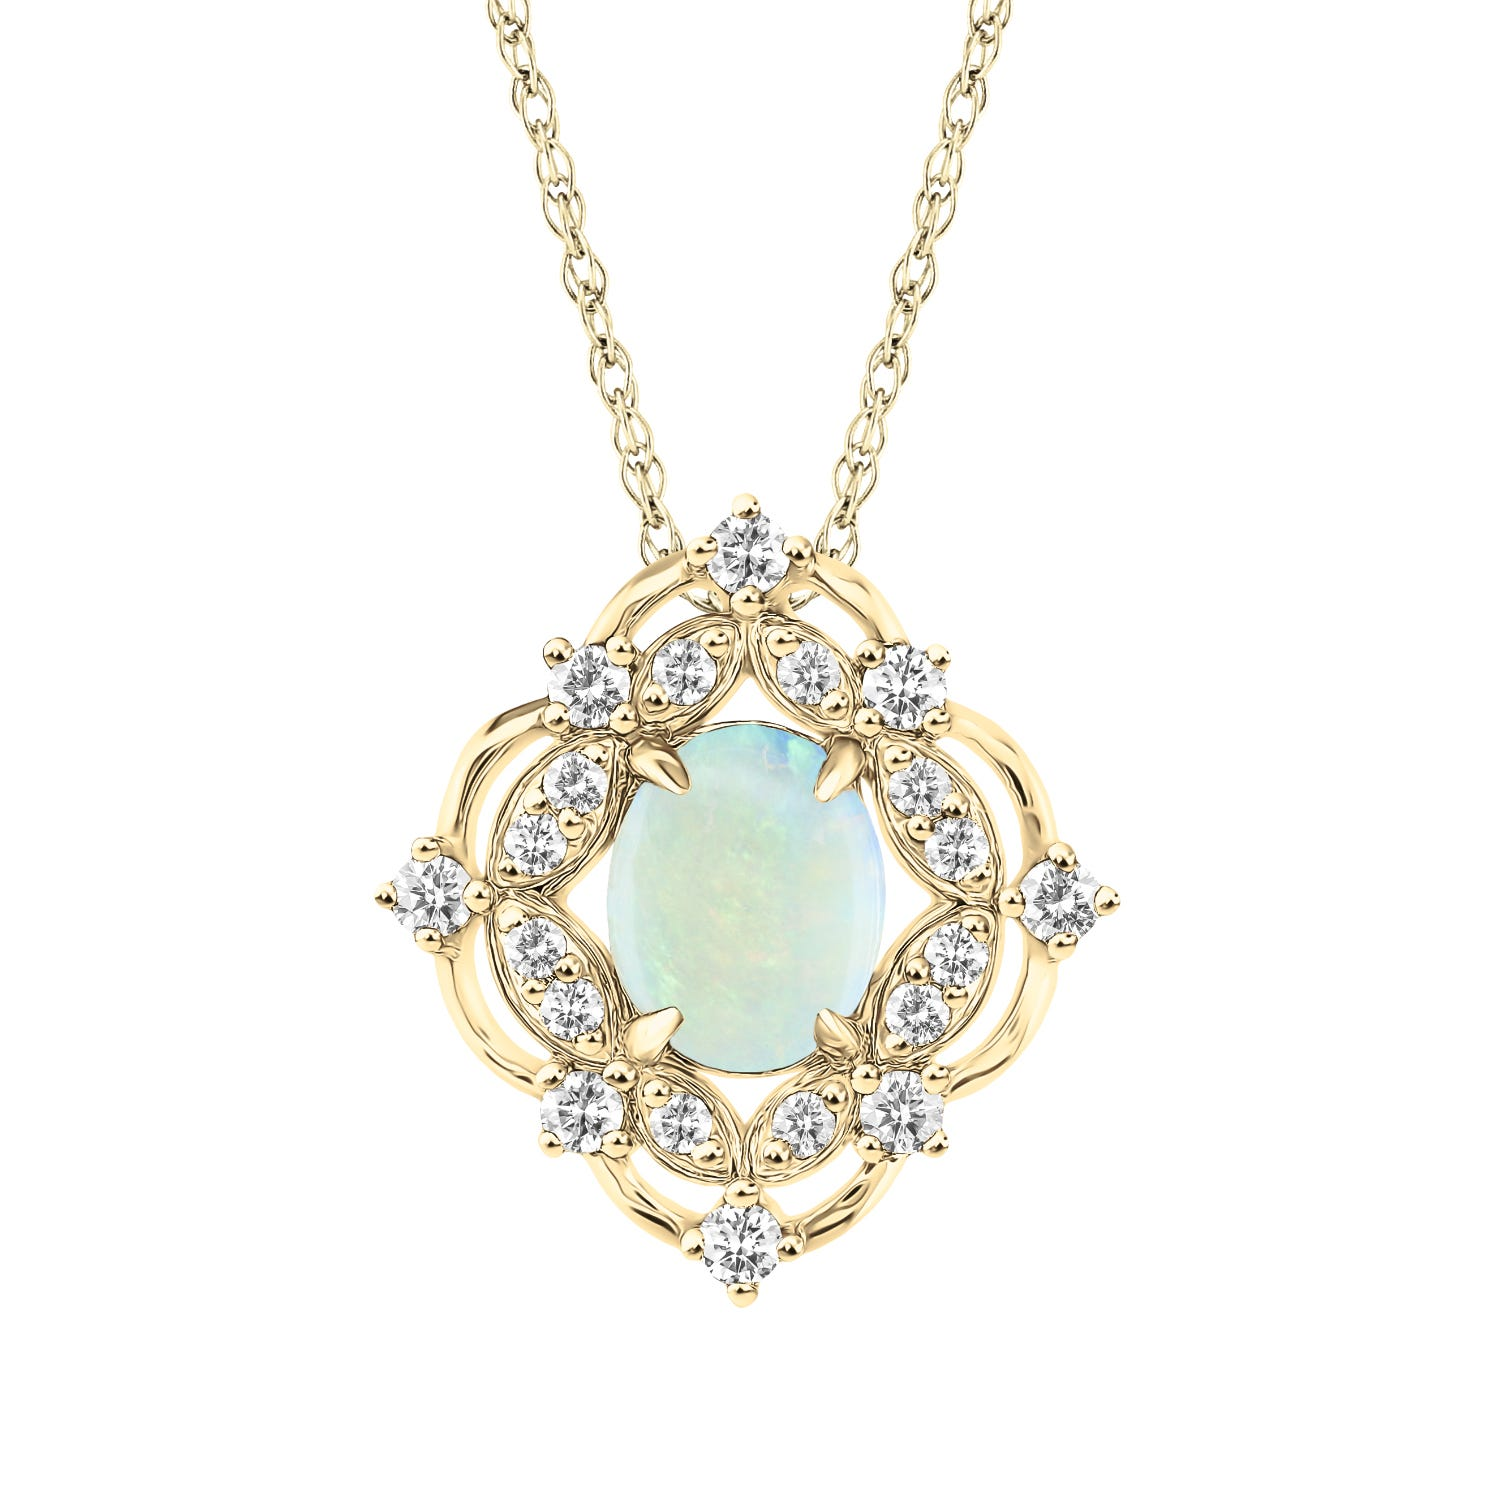 Vintage-Inspired Oval Opal & Diamond Pendant in 10k Yellow Gold